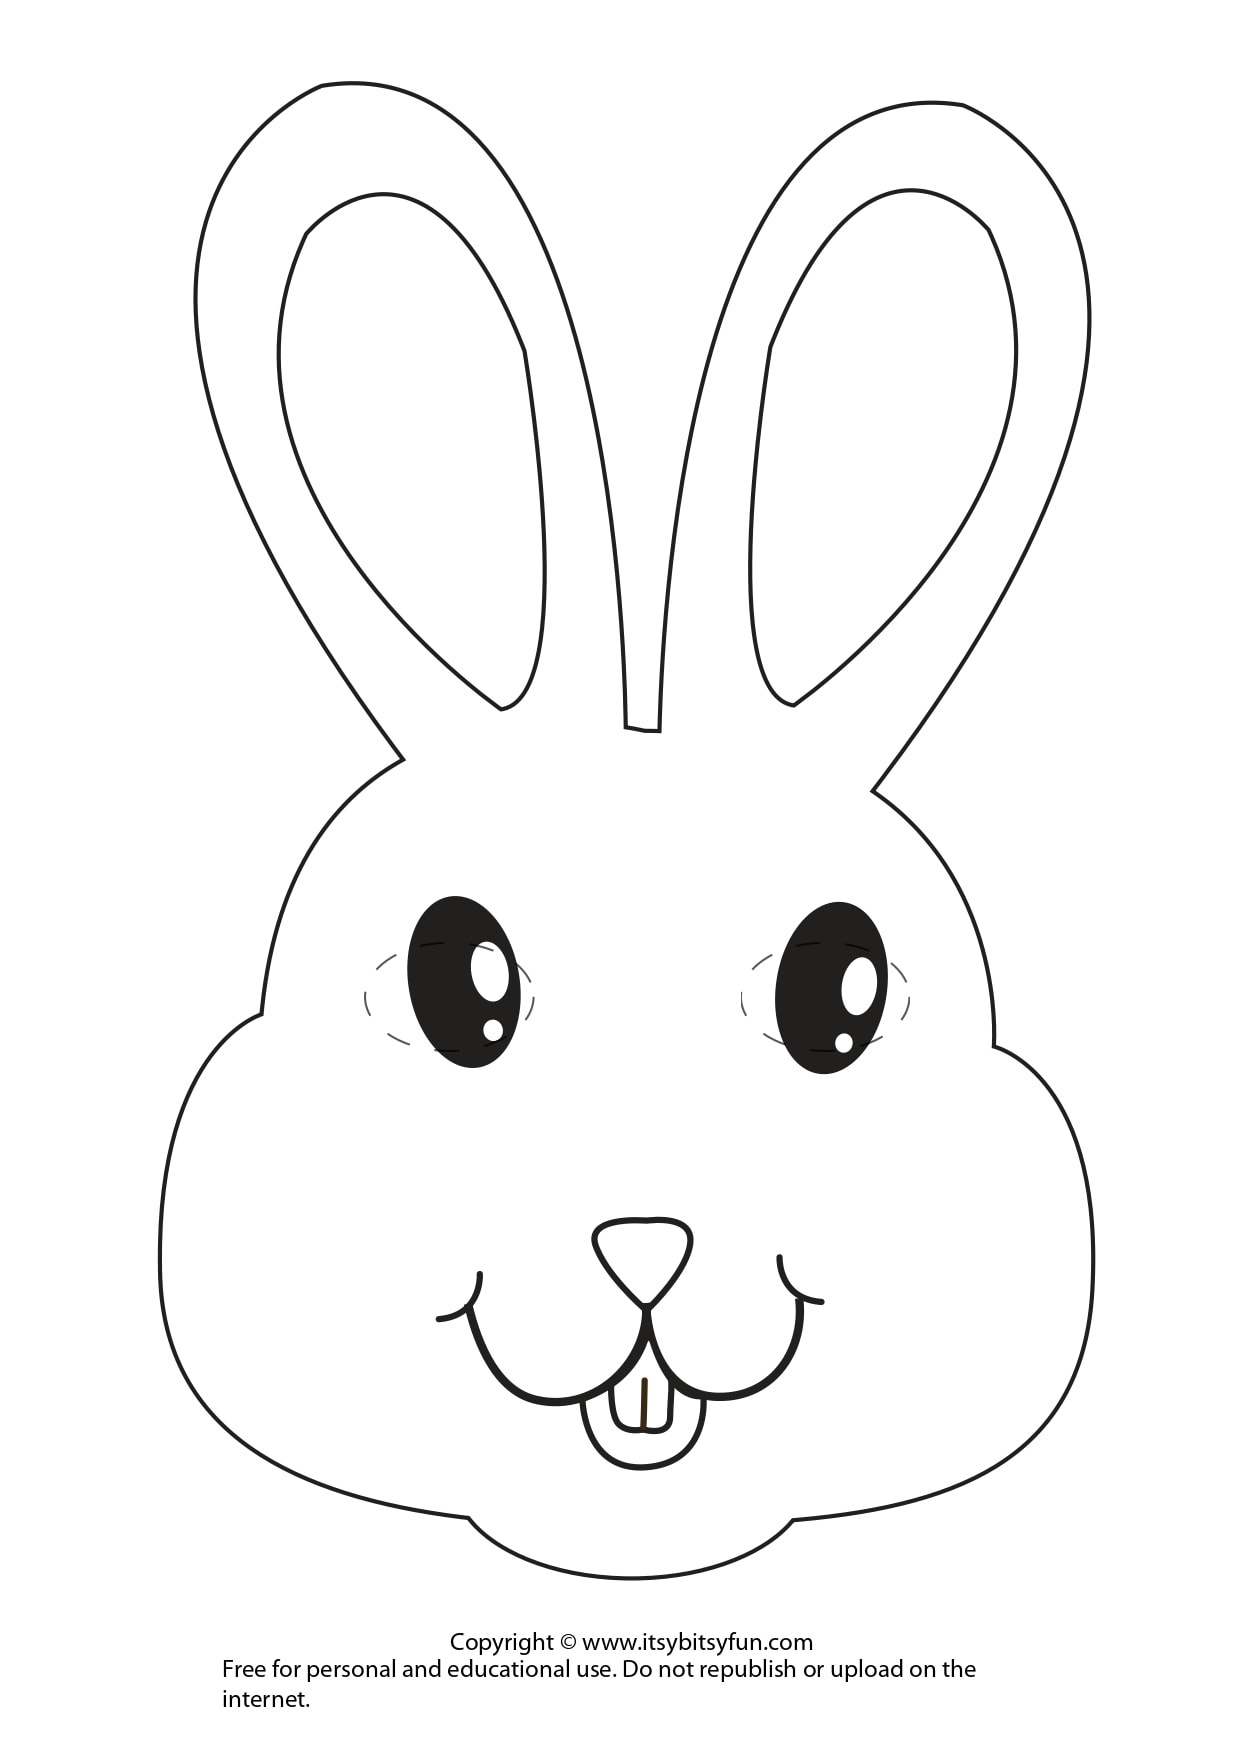 Easter Masks - Bunny Rabbit And Chick Template - Itsy Bitsy Fun - Free Printable Rabbit Template